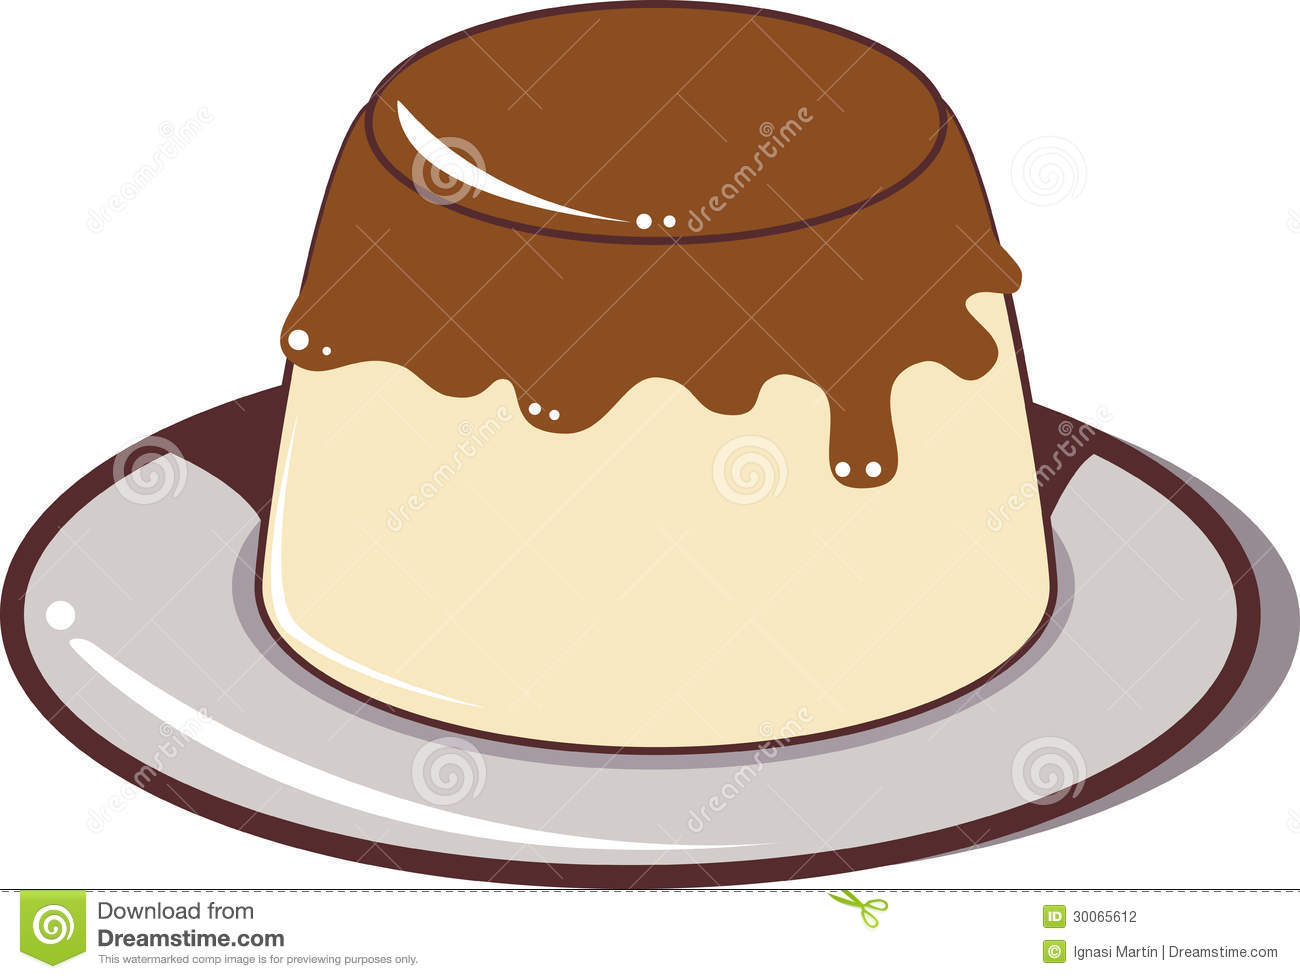 Pudding clipart 5 » Clipart Station.